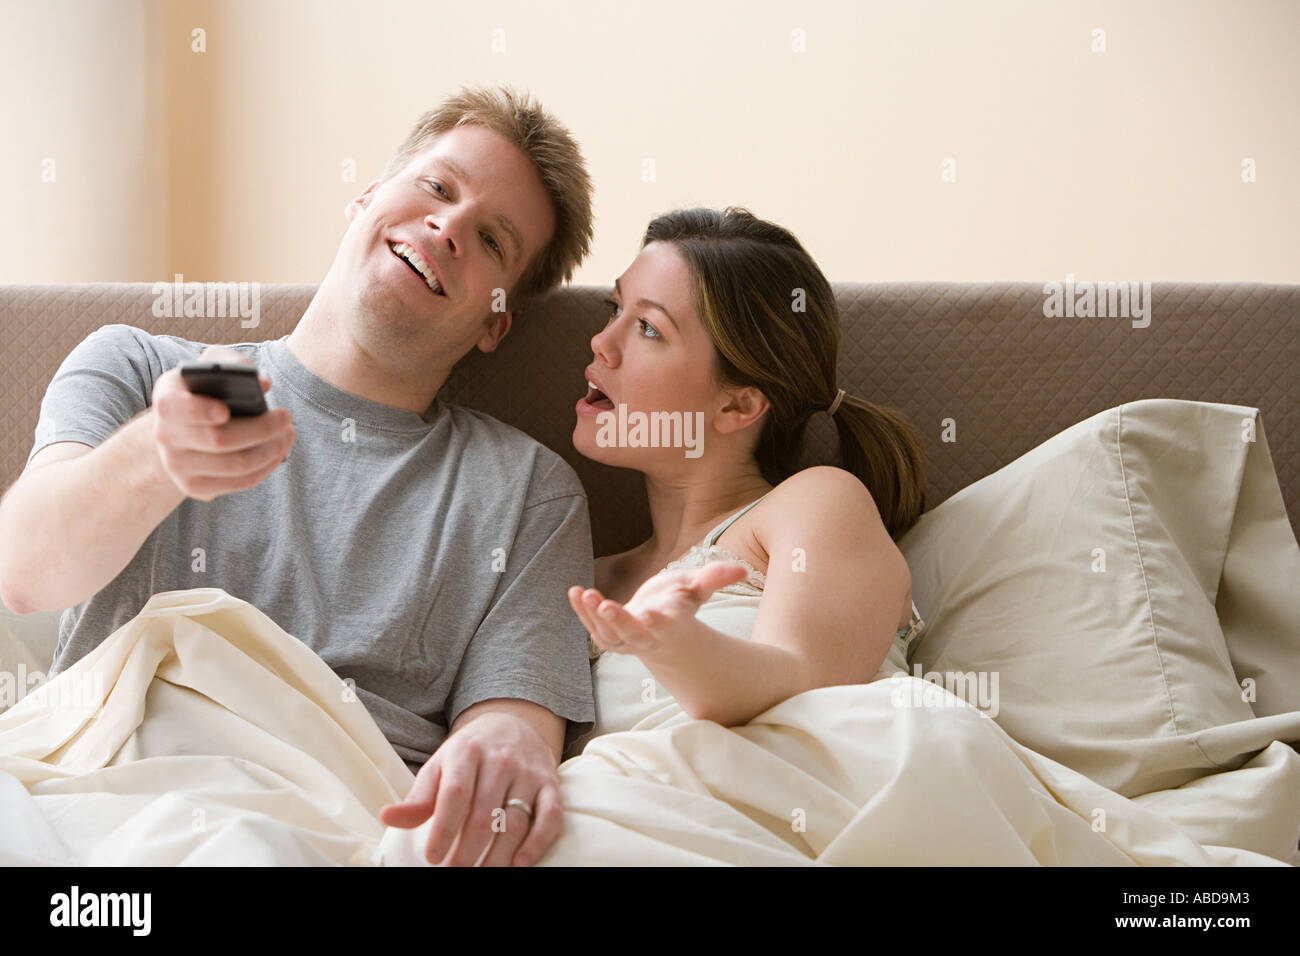 Couple watching television and arguing in bed - Stock Image